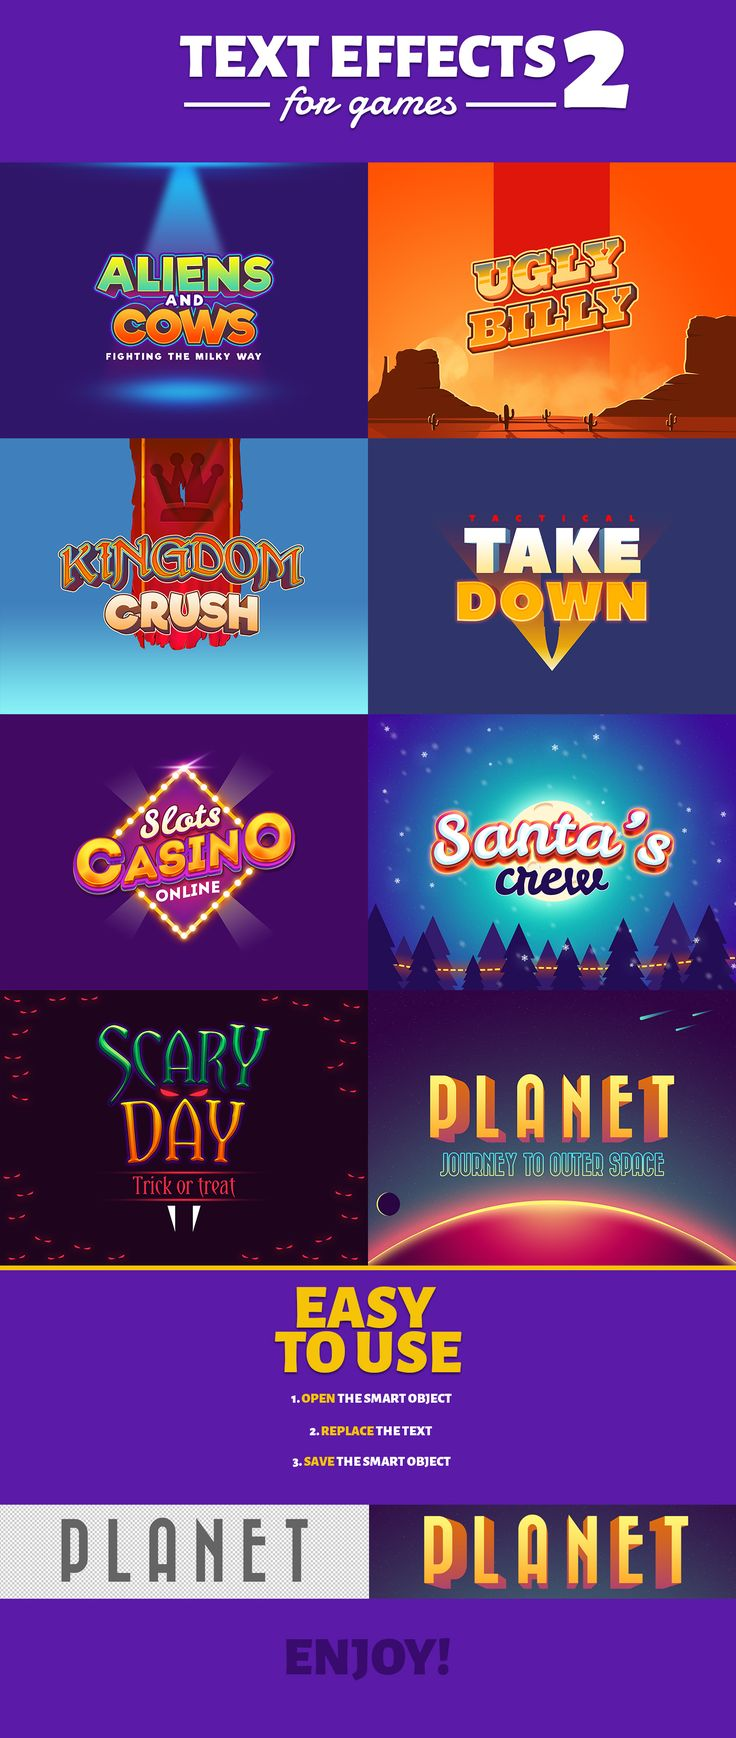 Text Effects For Games 2 on Behance